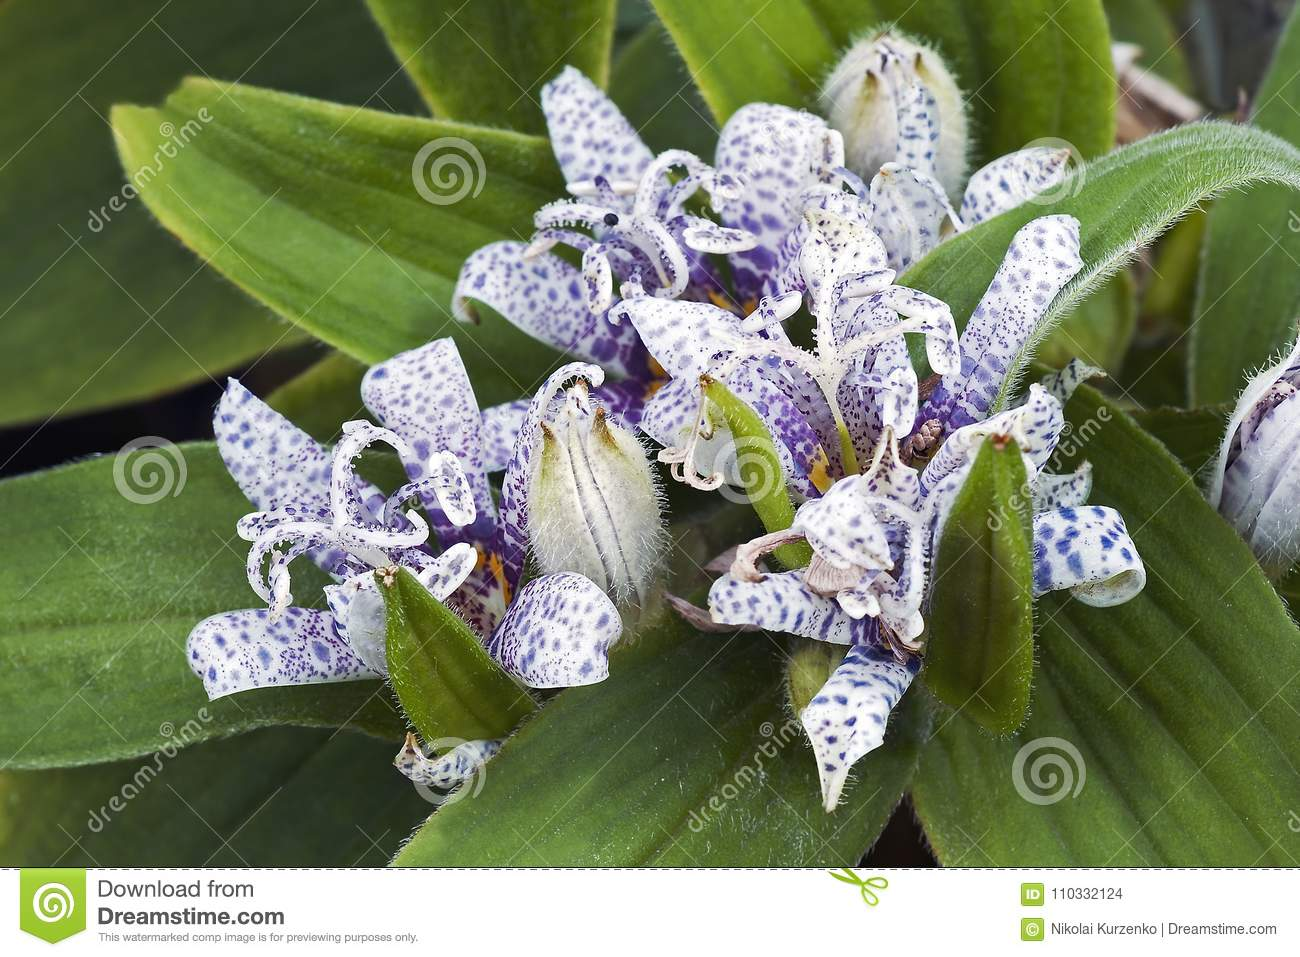 Toad lily flowers stock photo image of bloom toad 110332124 toad lily flowers izmirmasajfo